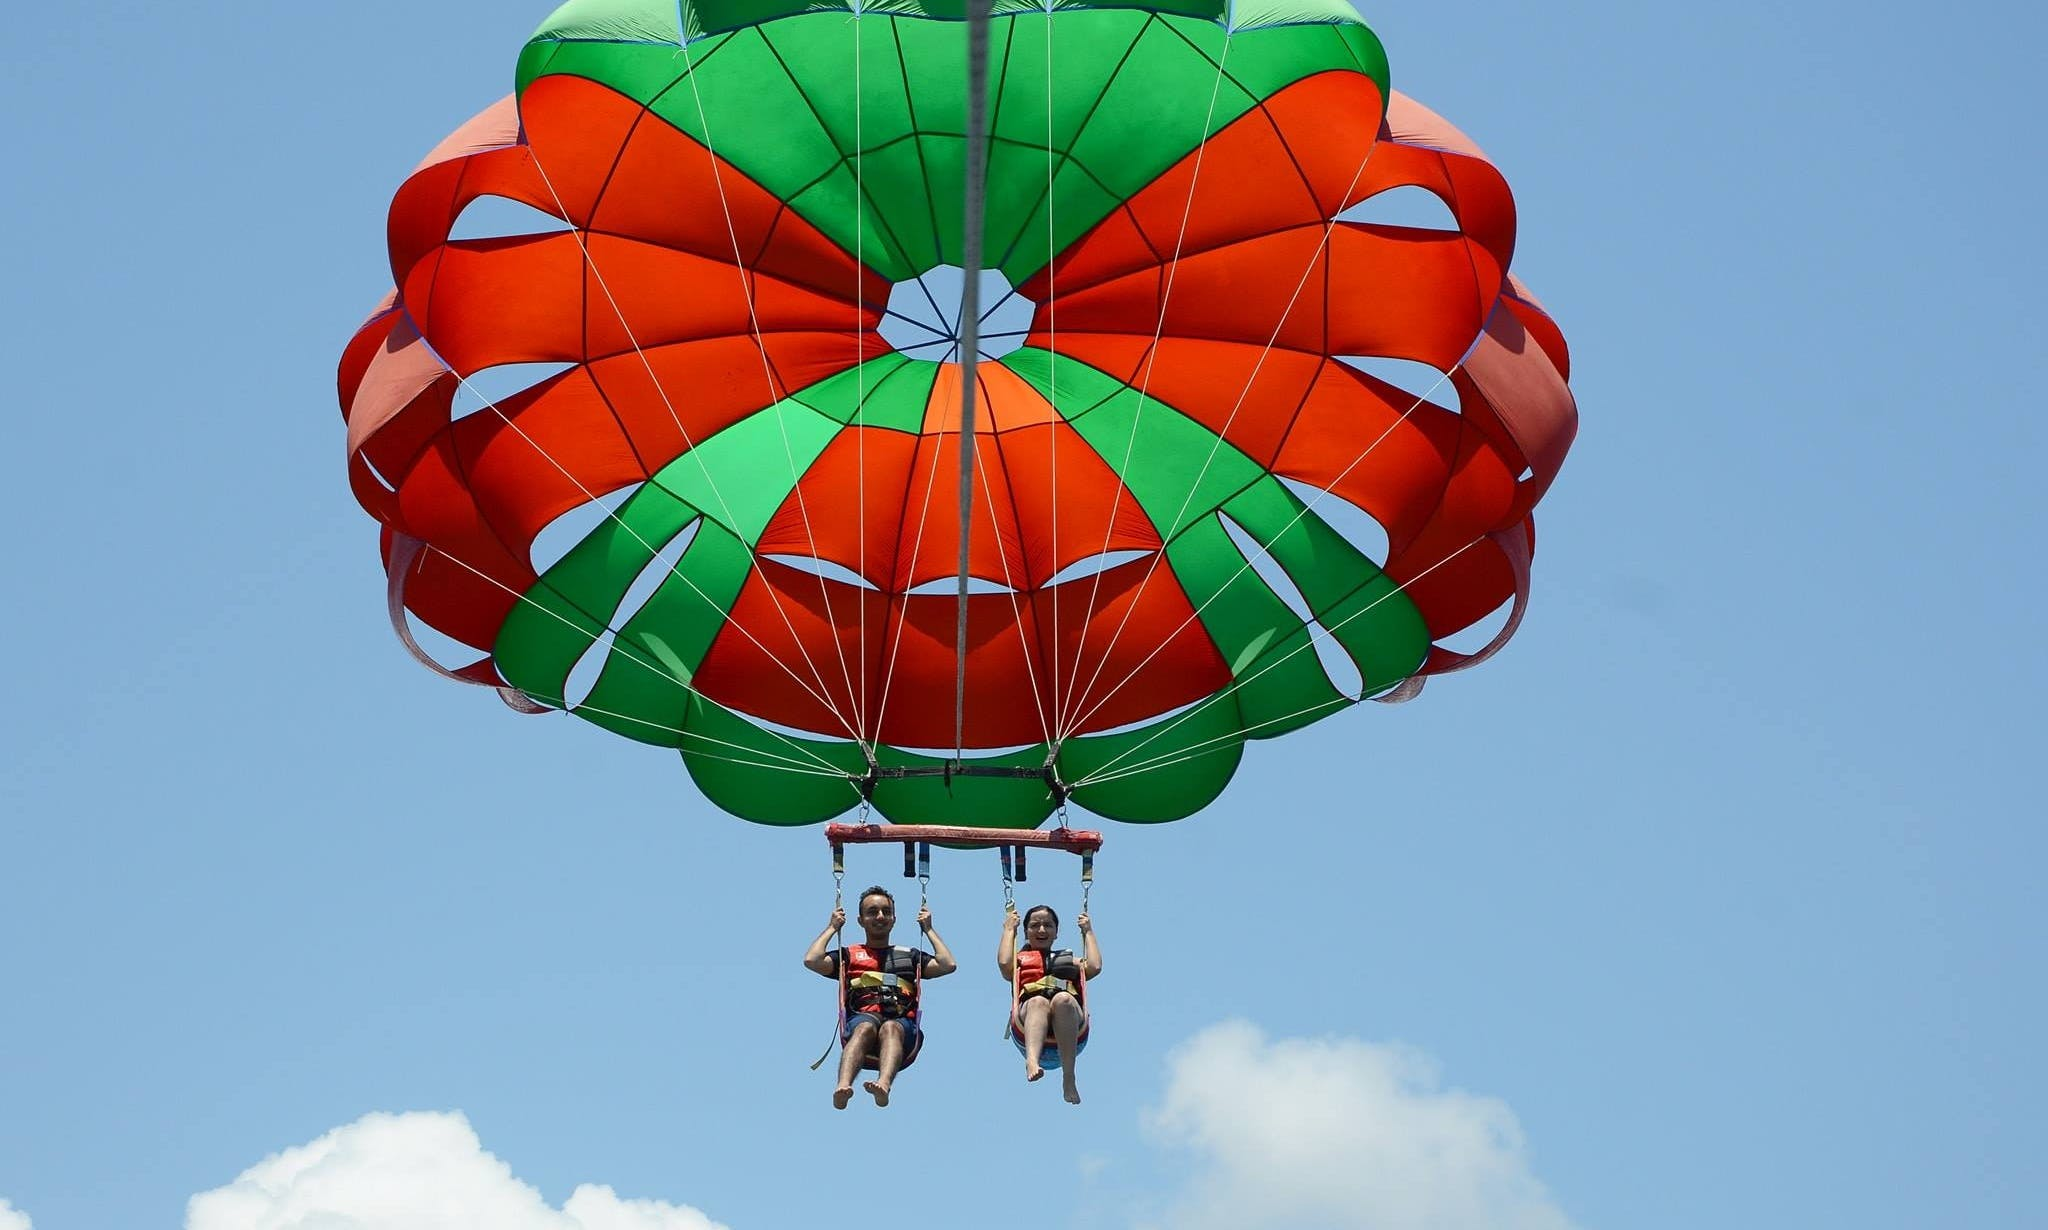 Enjoy An Exciting Parasailing Adventure In Kuta Selatan, Indonesia!